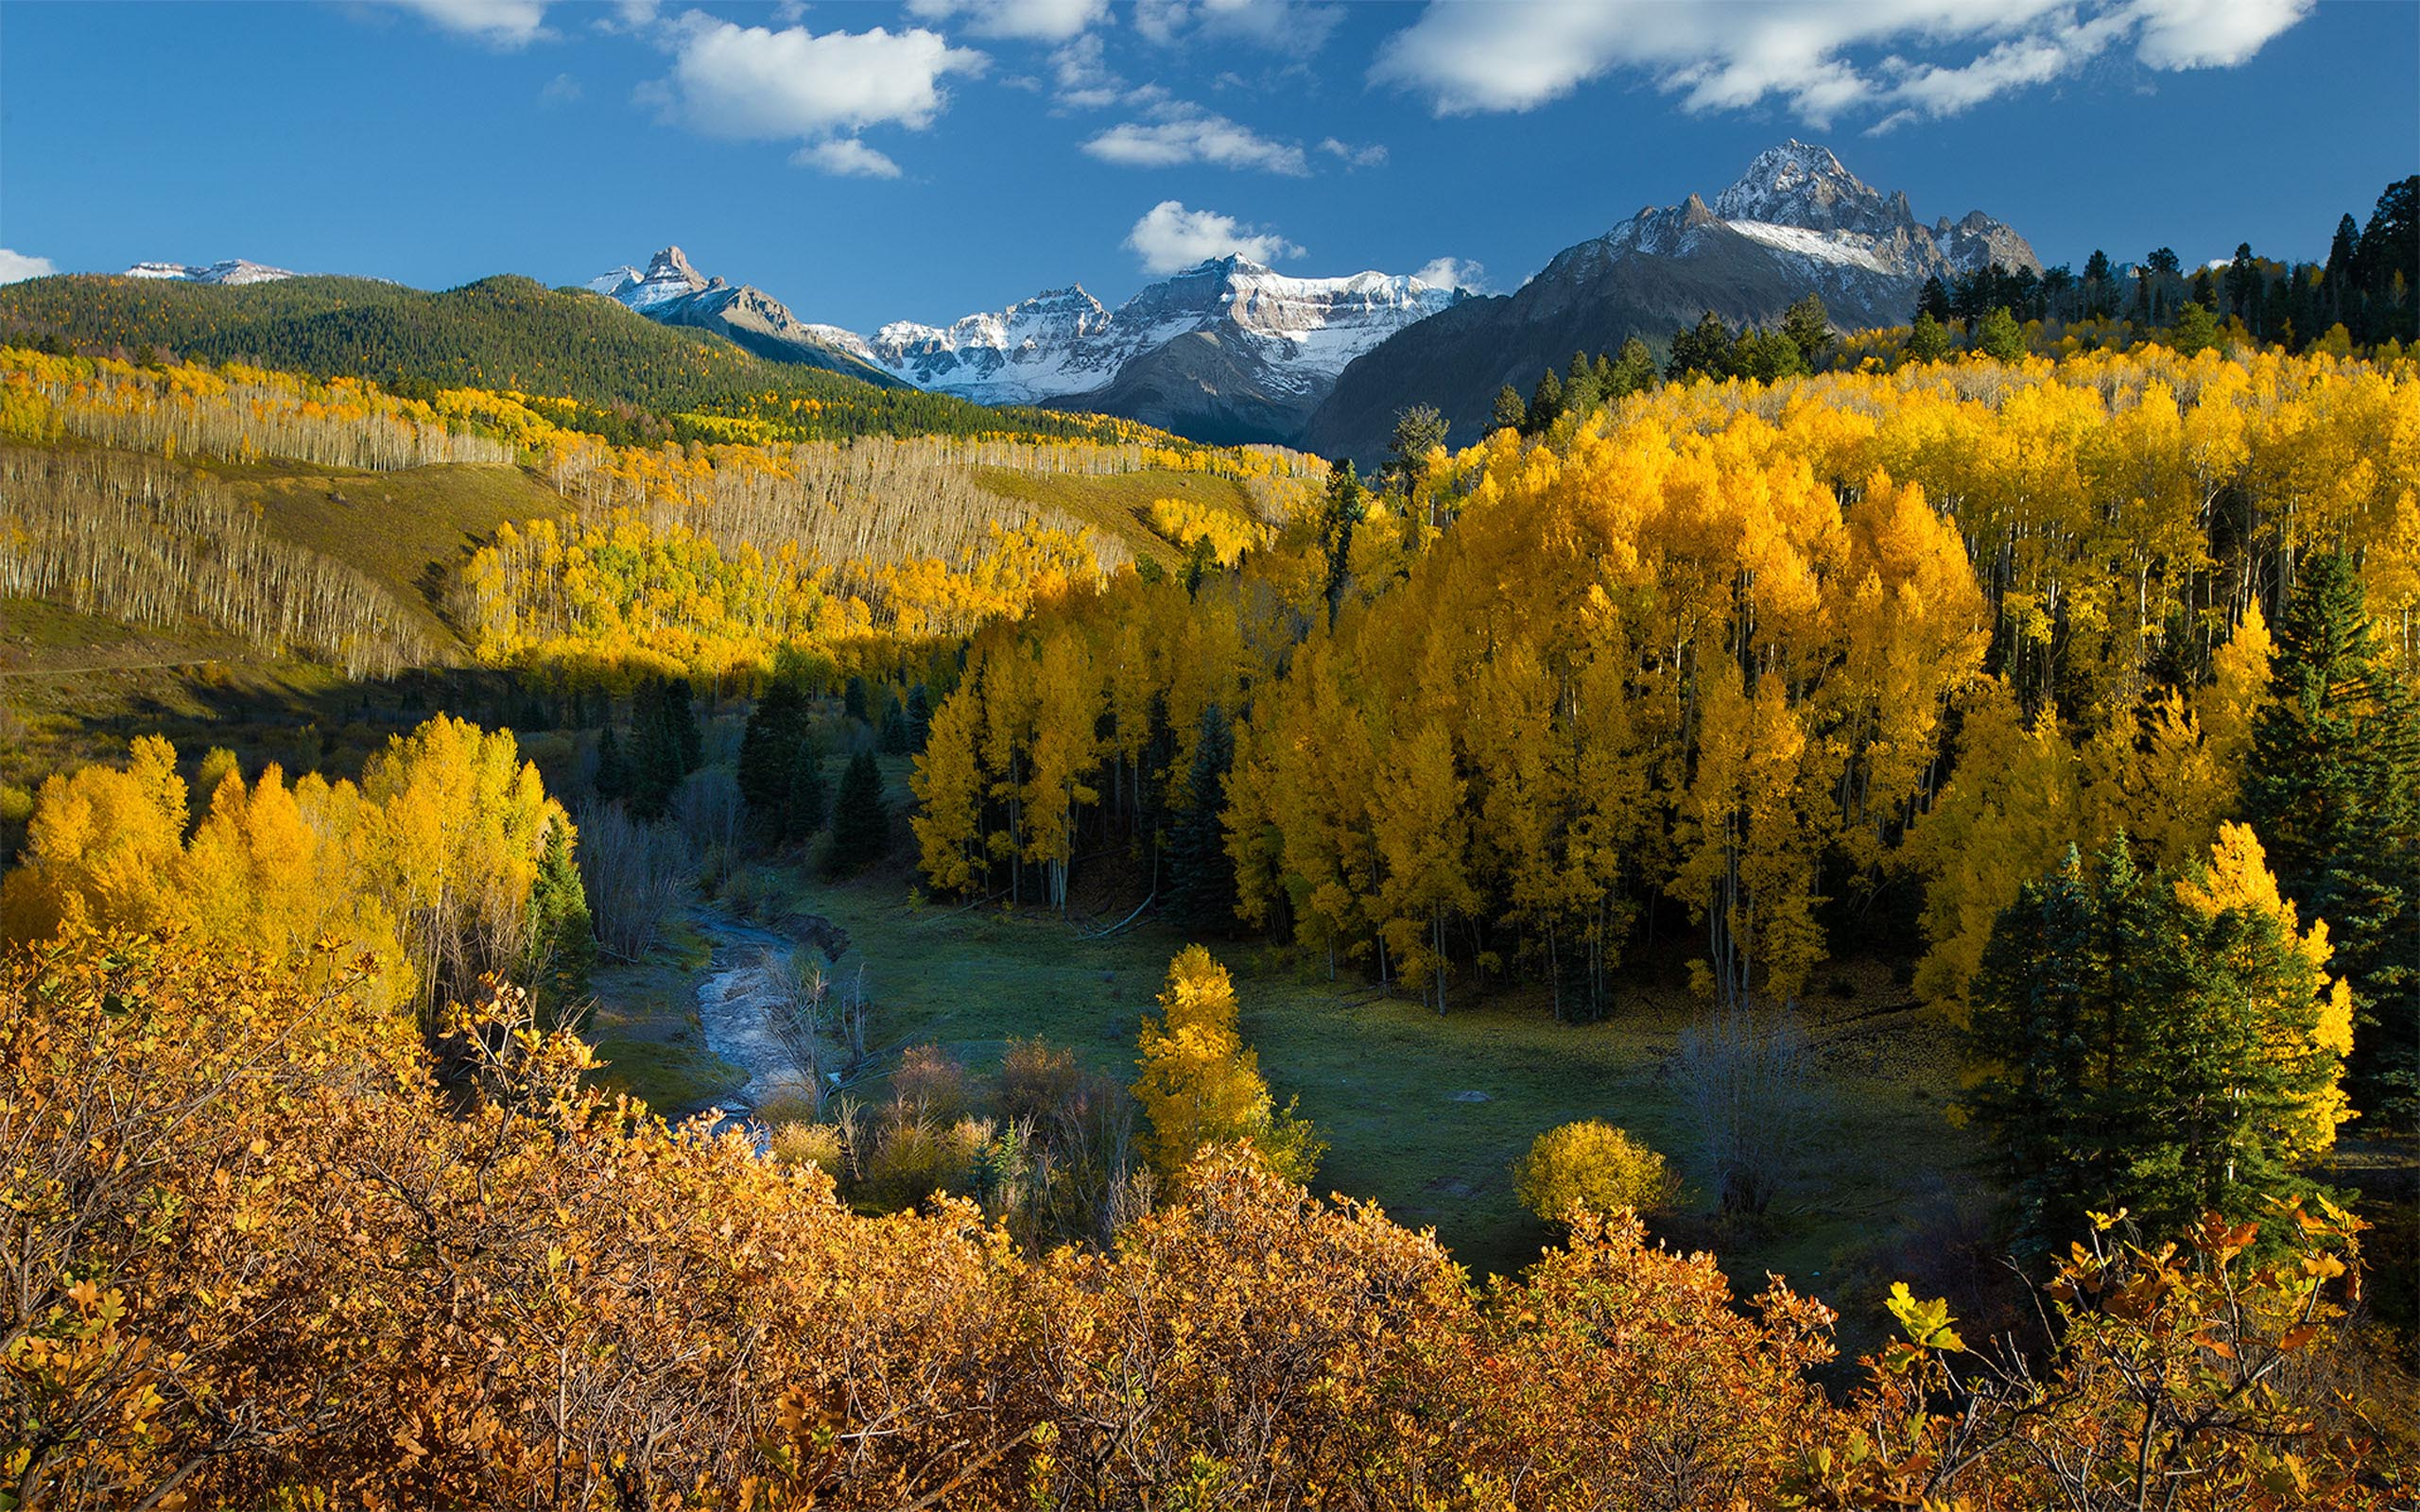 Free Android Fall Wallpaper Nature Autumn In Colorado Forest With Yellow Leaves